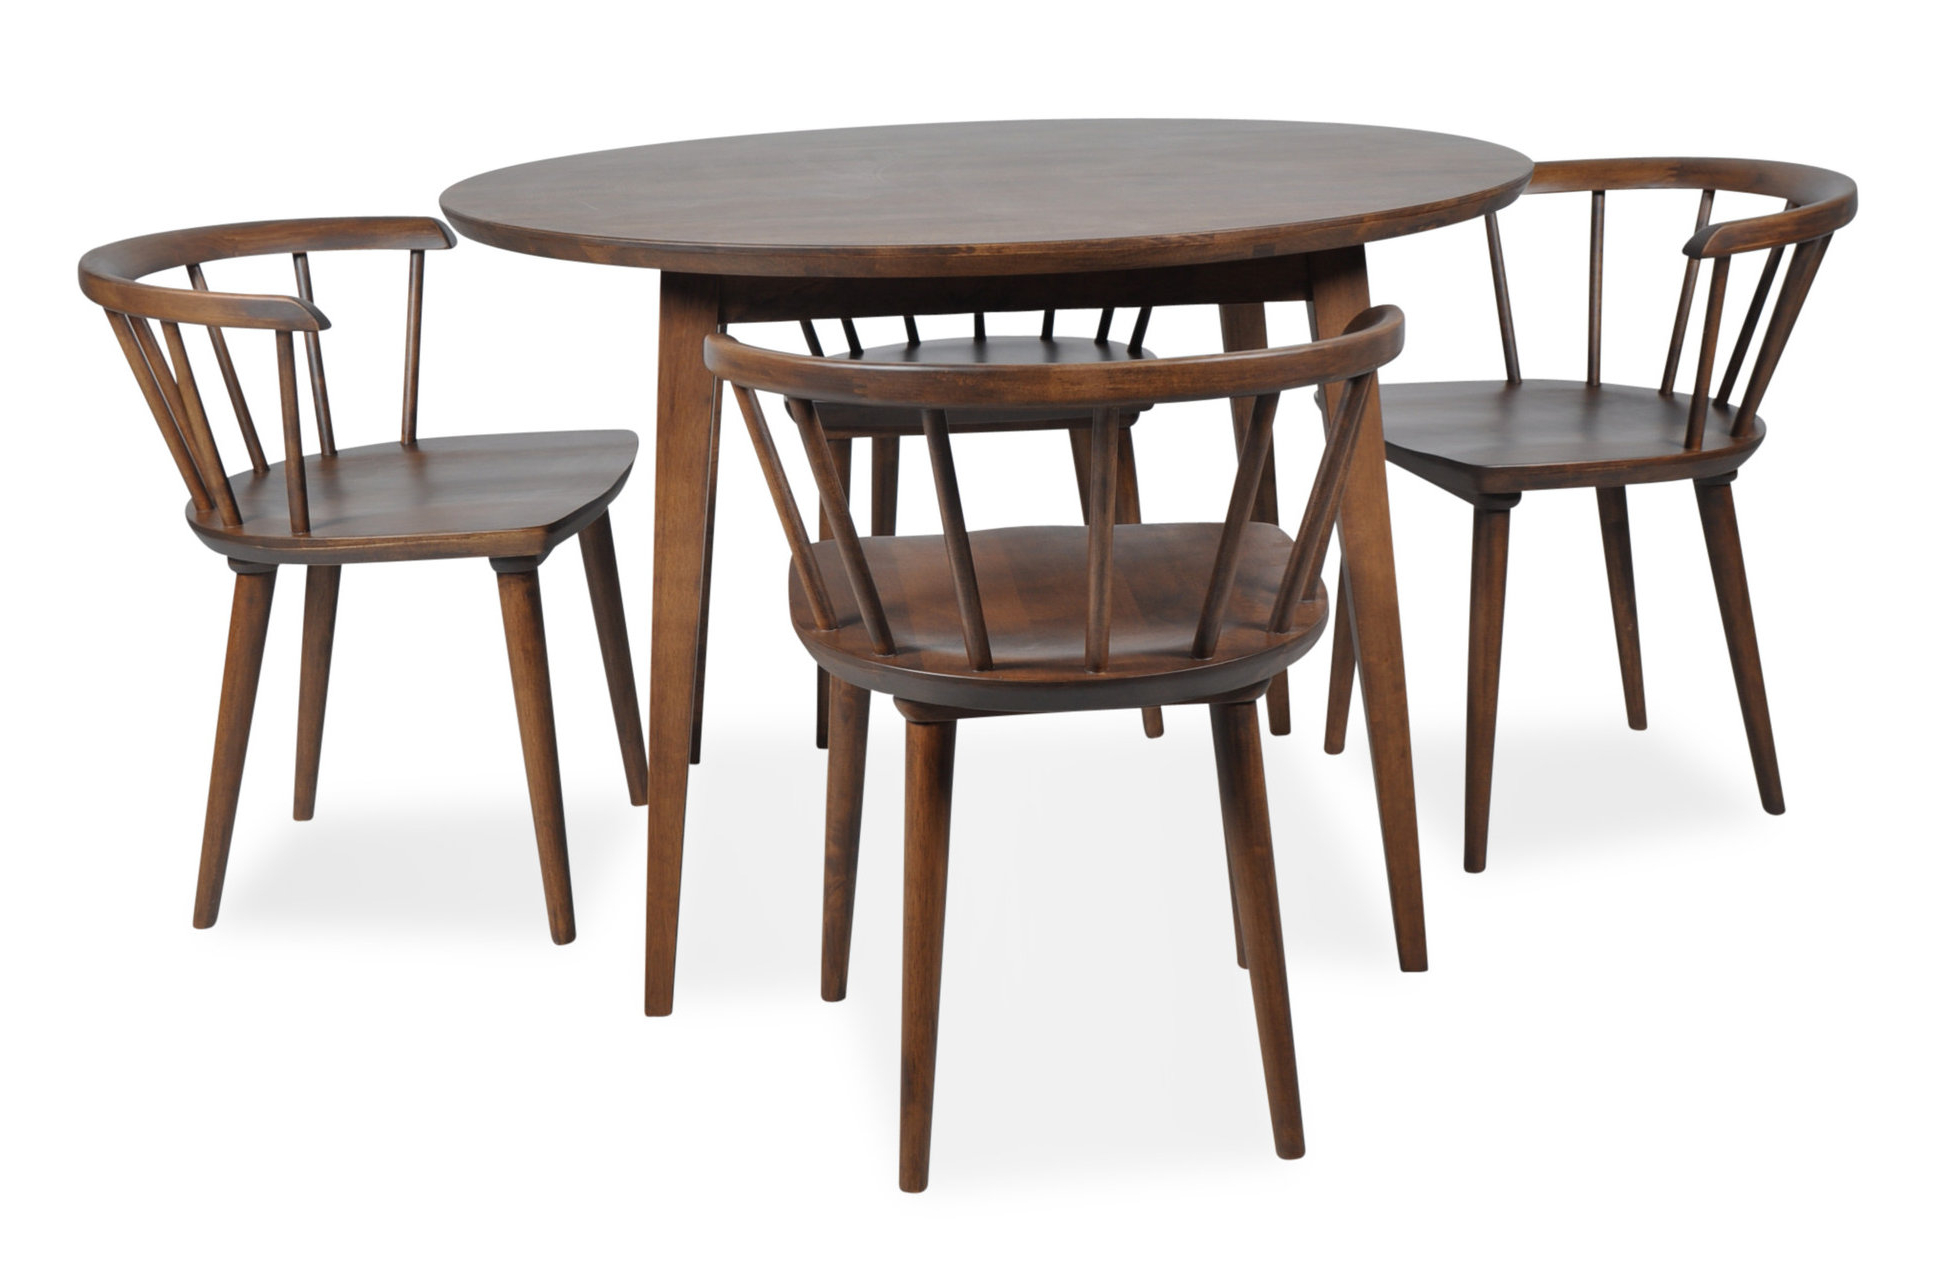 5 Piece Breakfast Nook Dining Sets In Trendy Burgan 5 Piece Solid Wood Breakfast Nook Dining Set (View 4 of 20)